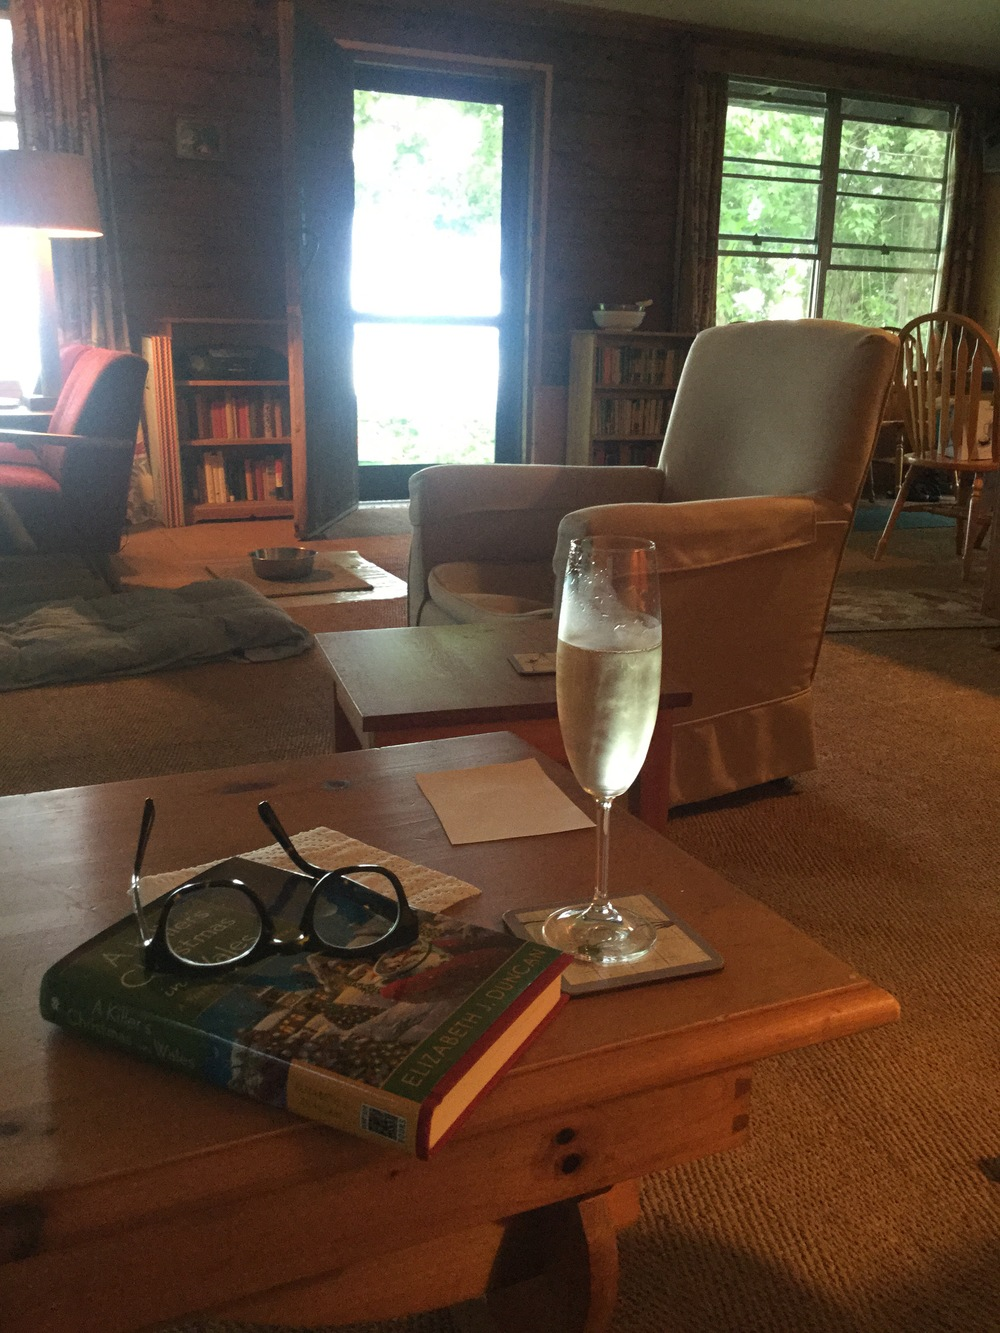 I read 4.5 detective novels and drank bubbly.